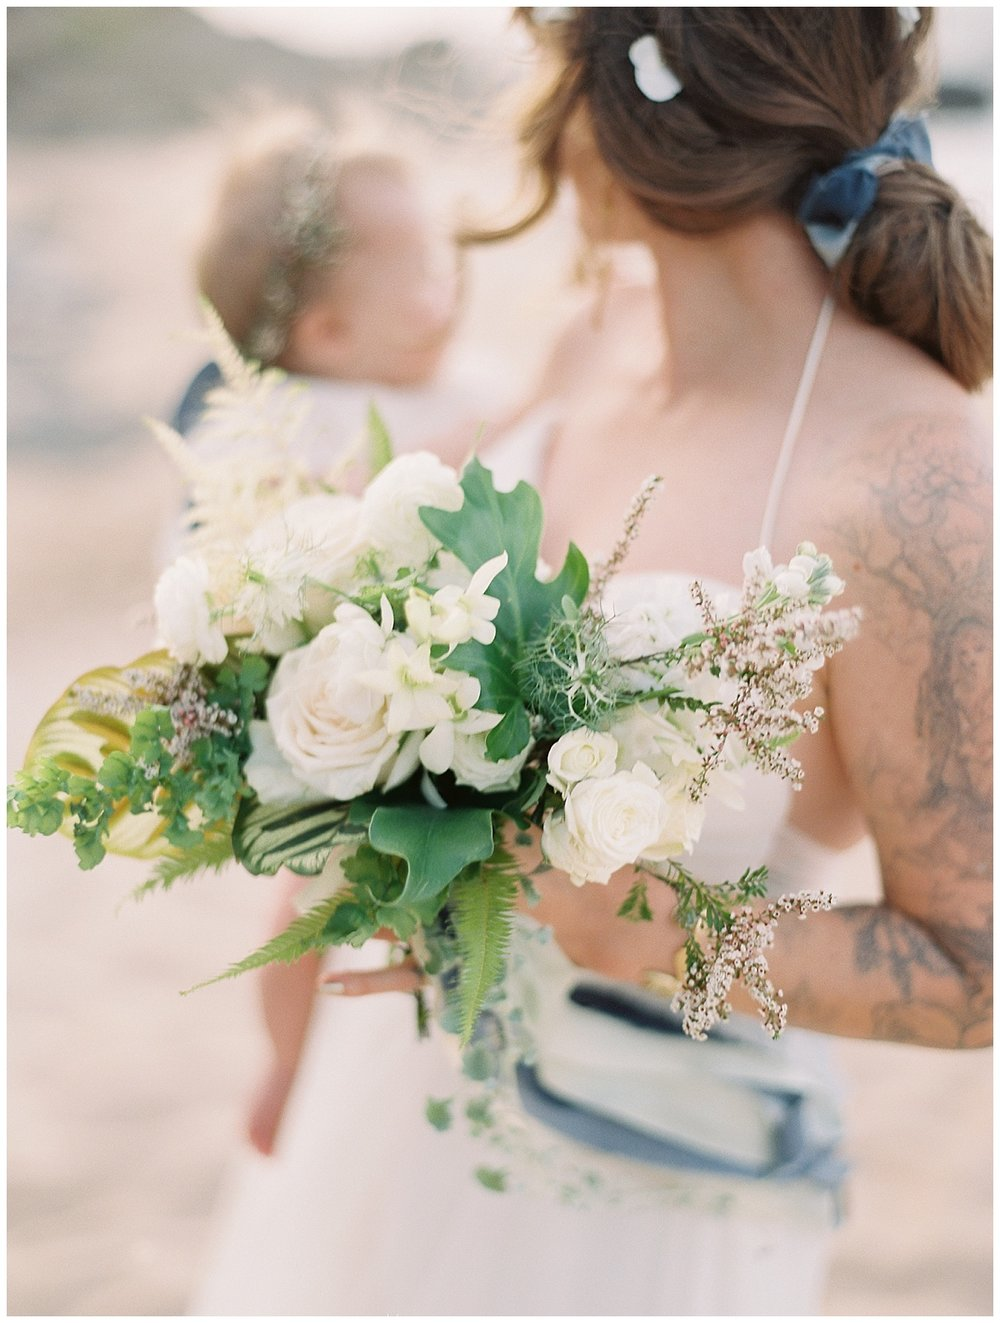 beach-elopement-bride-baby-girl-white-flower-bouquet.jpg